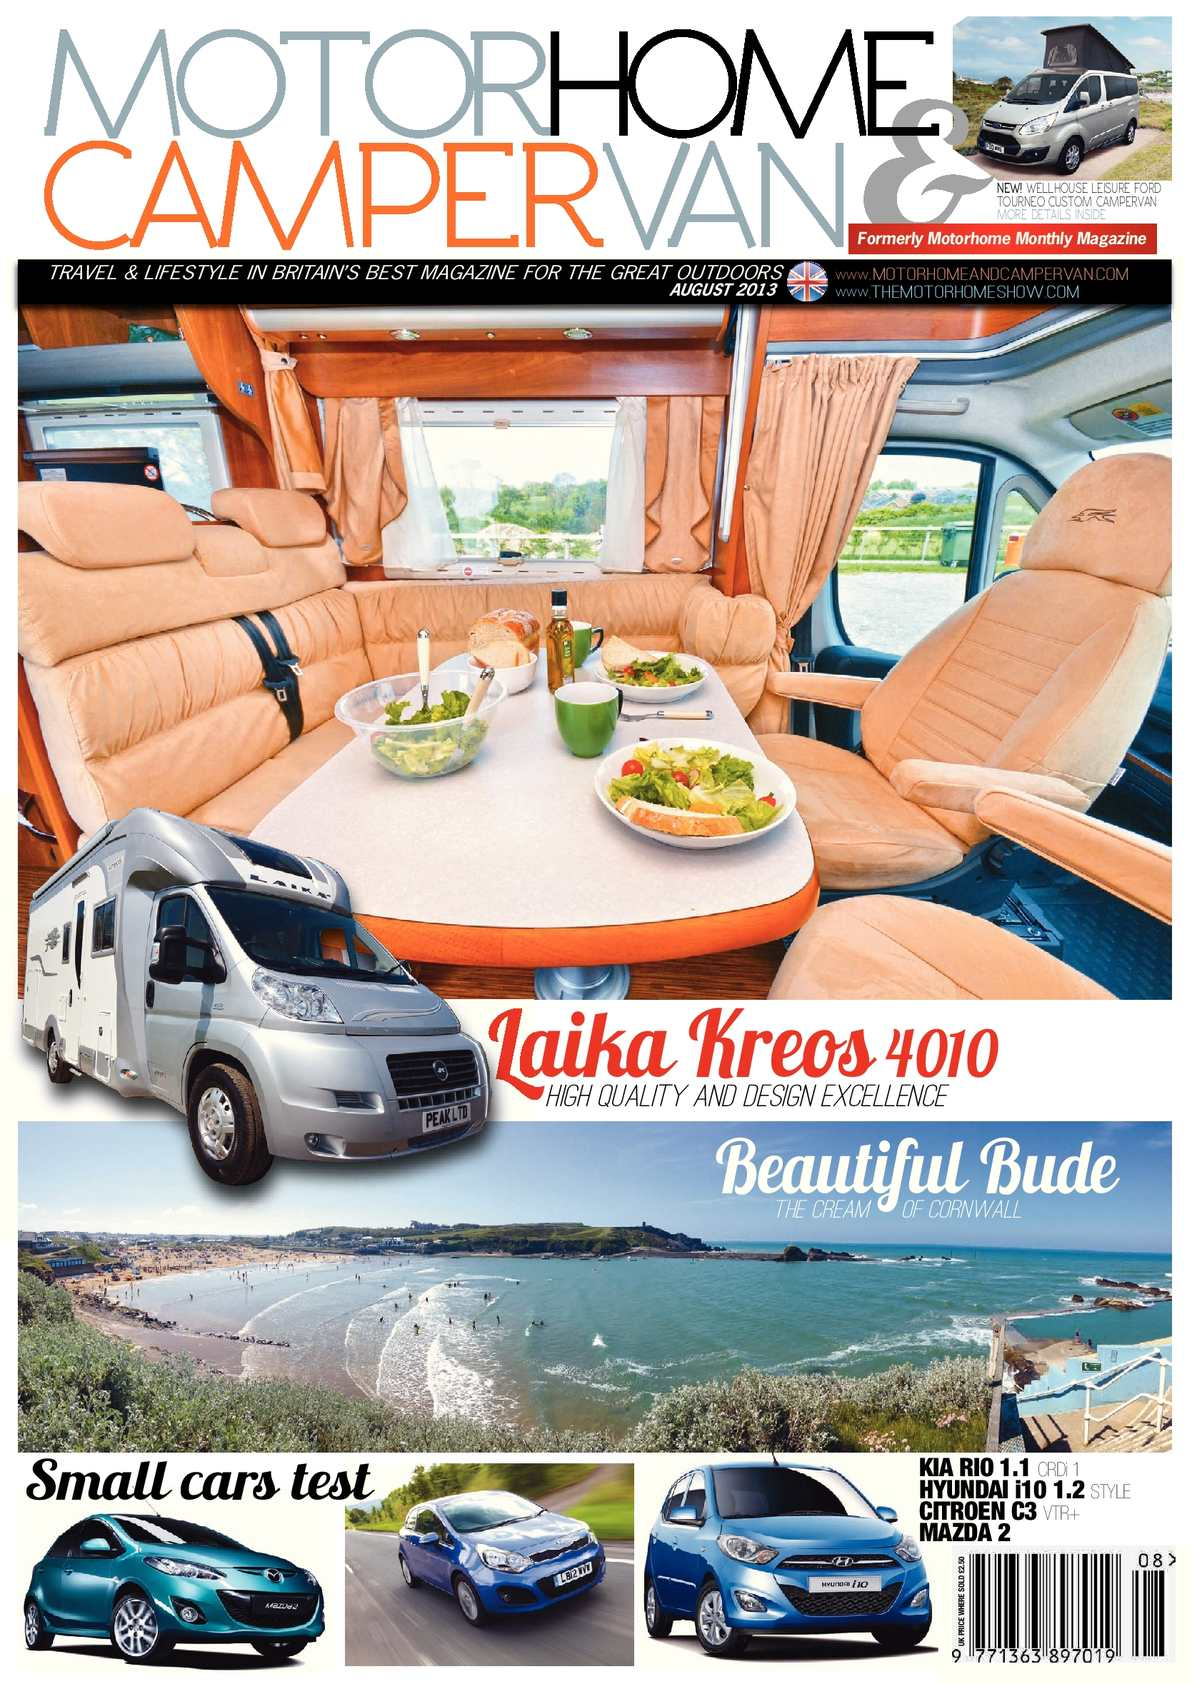 August 2013 Motorhome and Campervan